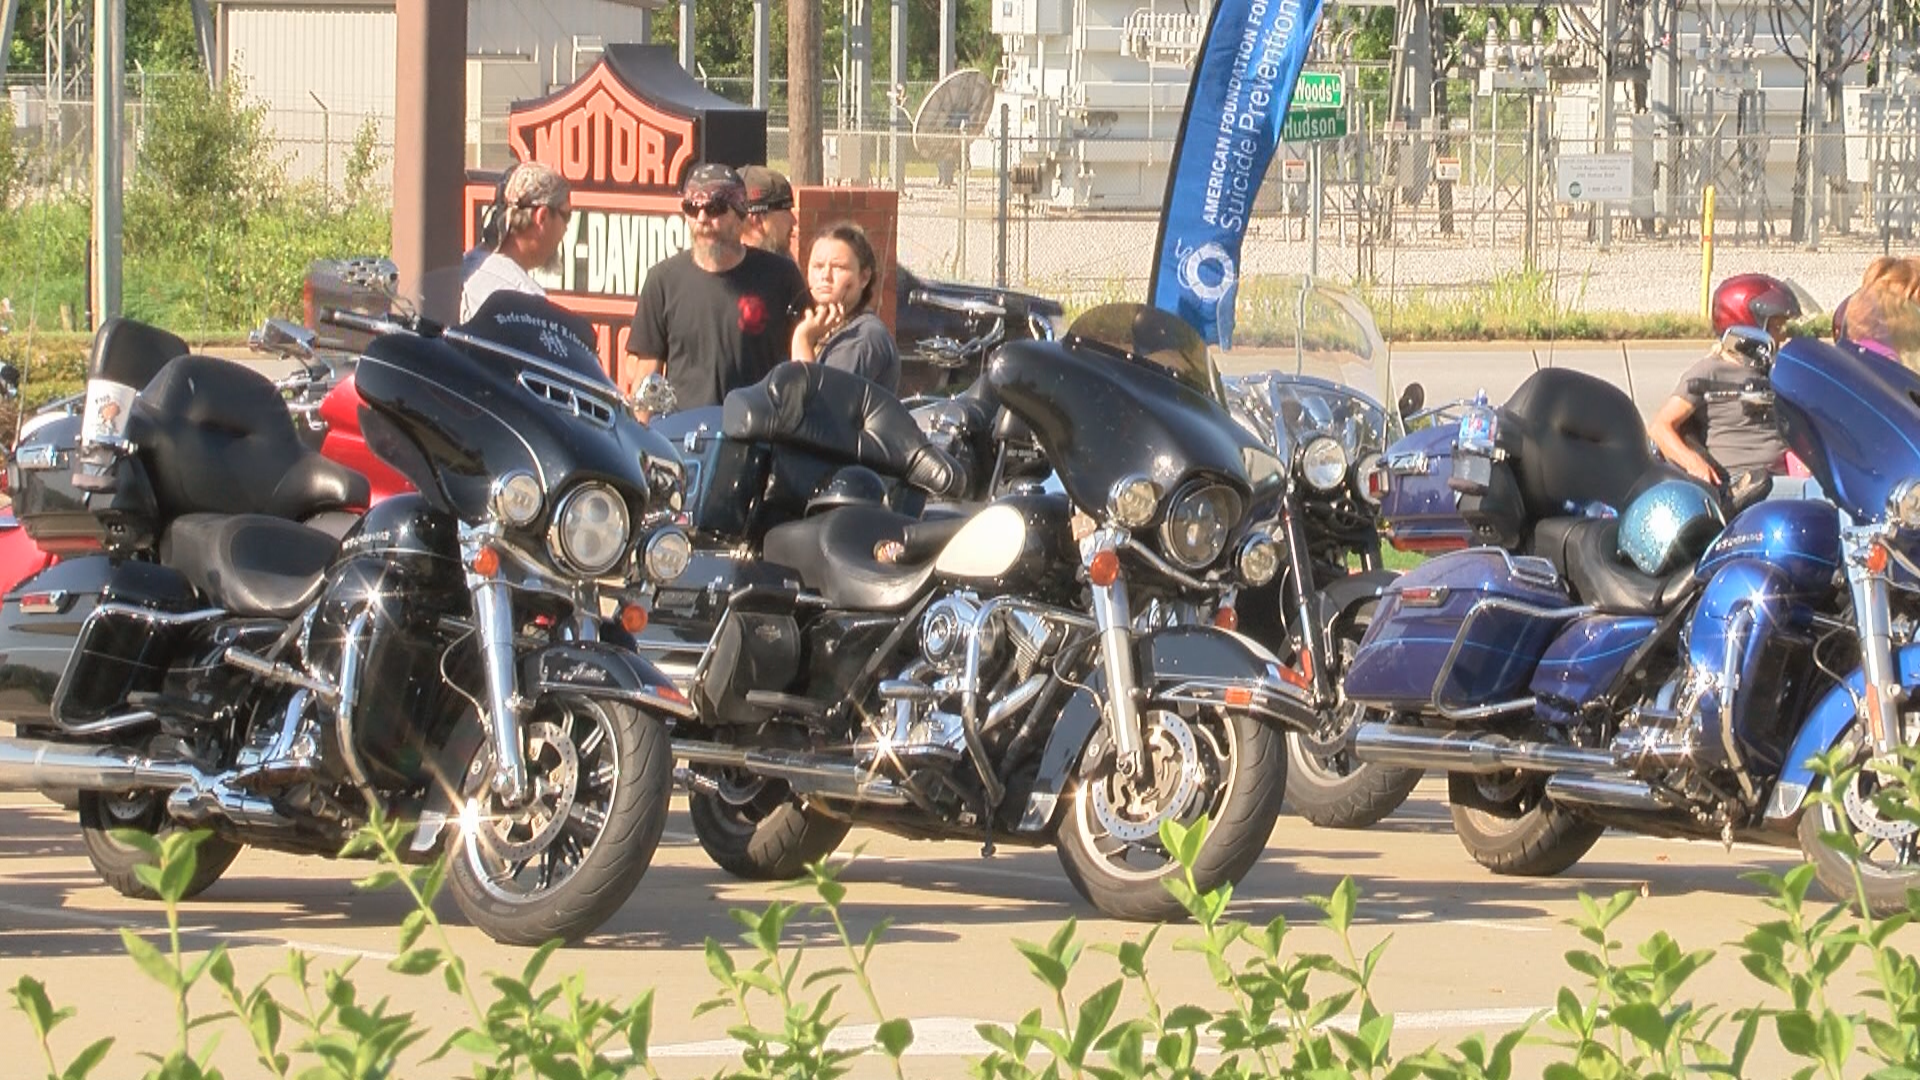 MOTORCYCLE_1531009540104.png